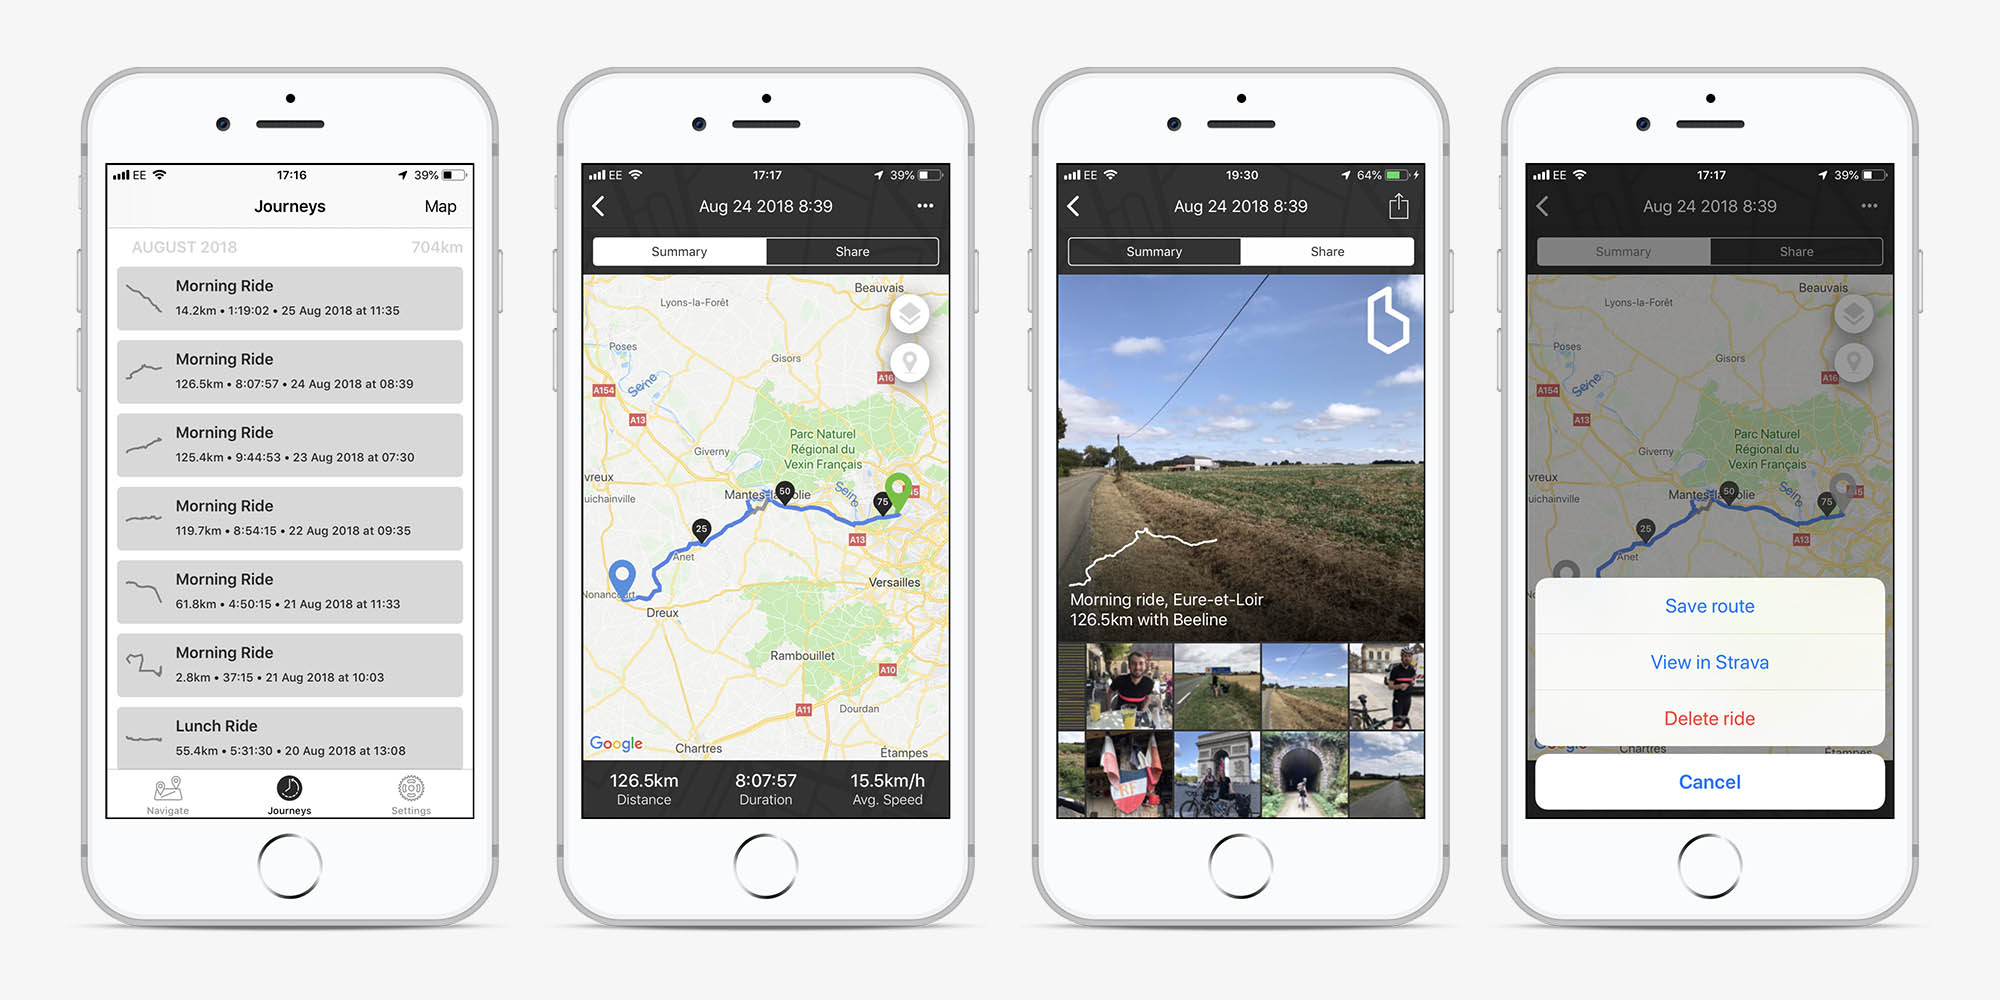 Screens in the Beeline app showing the journeys tab, a journey summary, a journey being shared and saving a route.